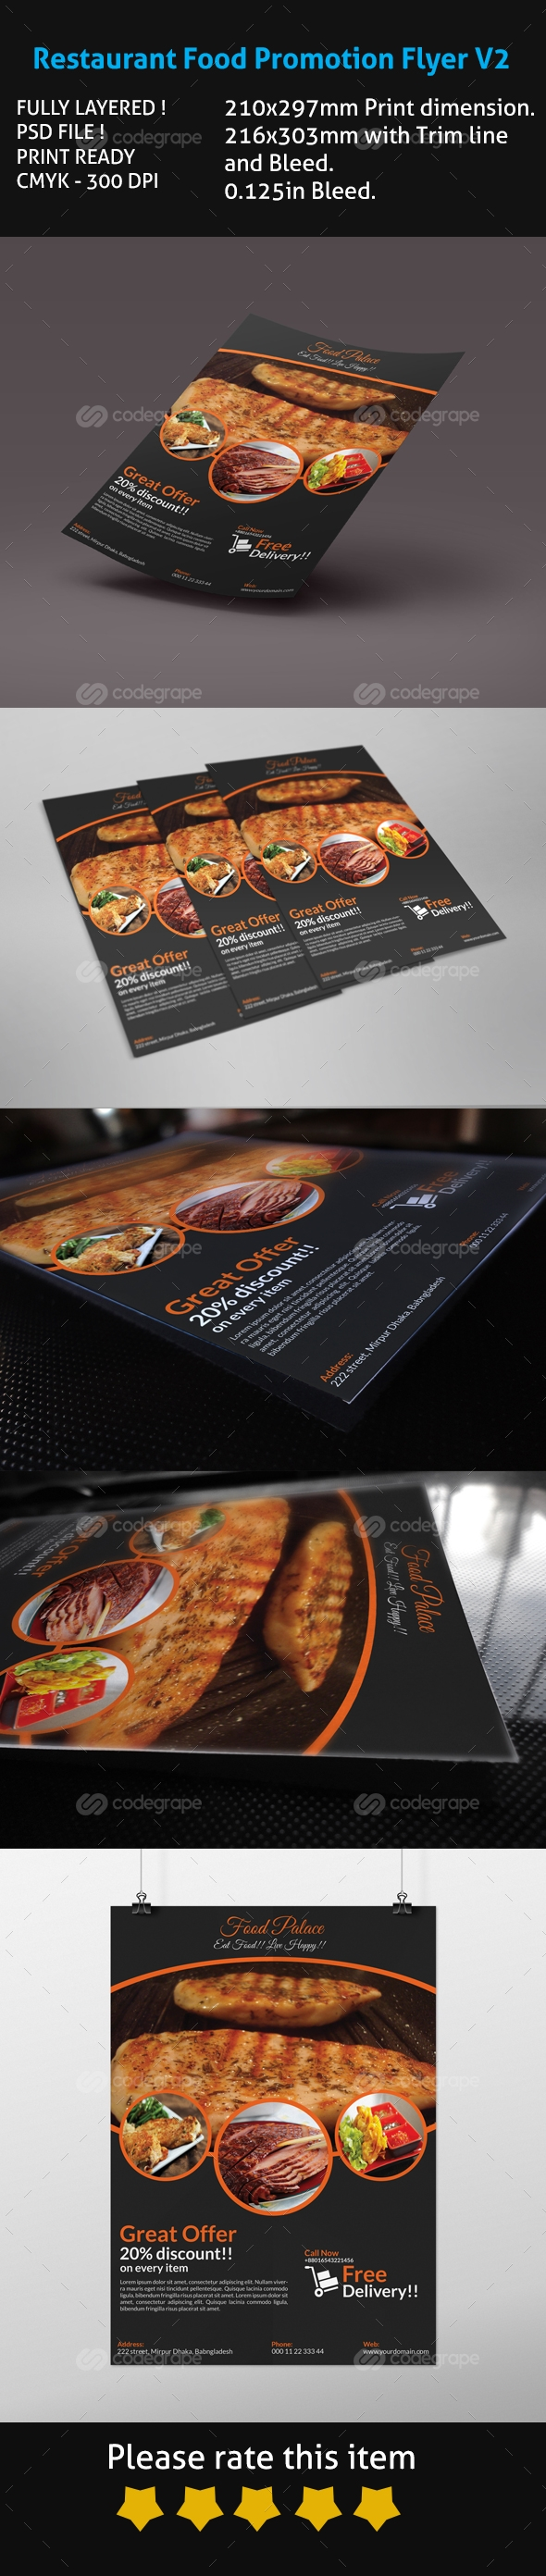 Restaurant Food Promotion Flyer